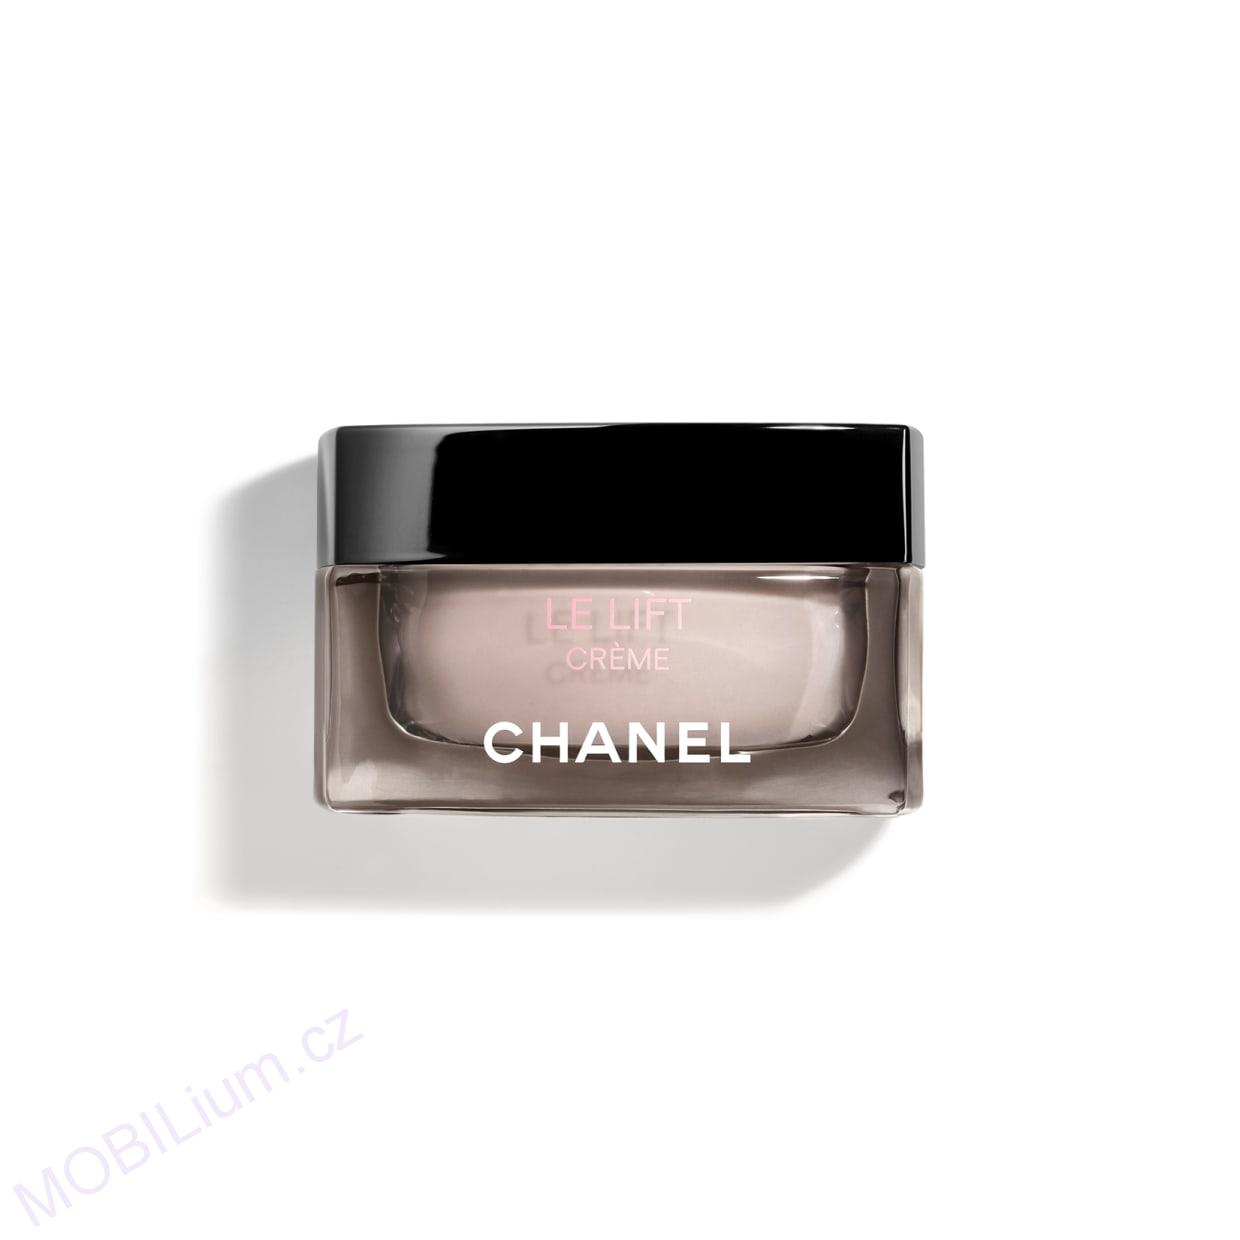 Chanel Le Lift Creme SMOOTHING AND FIRMING Botanical Alfalfa Concentrate 50 ml